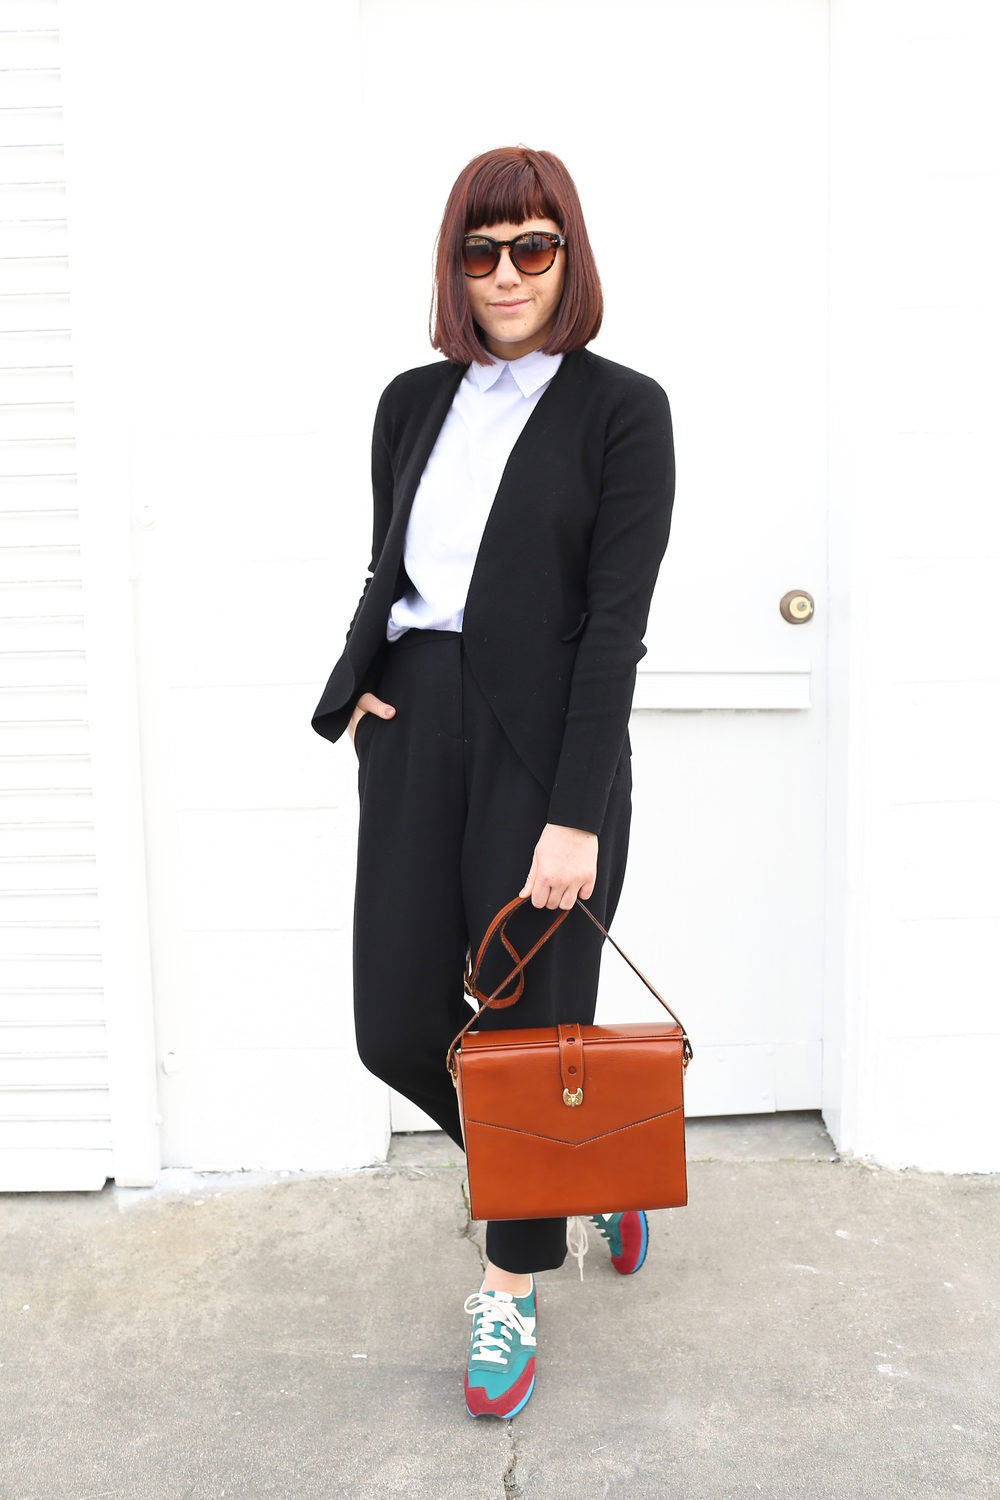 Blazer: Jigsaw London; Blouse: J.Crew; Pants: Jigsaw London; Sneakers: New Balance, J.Crew; Bag: Vintage